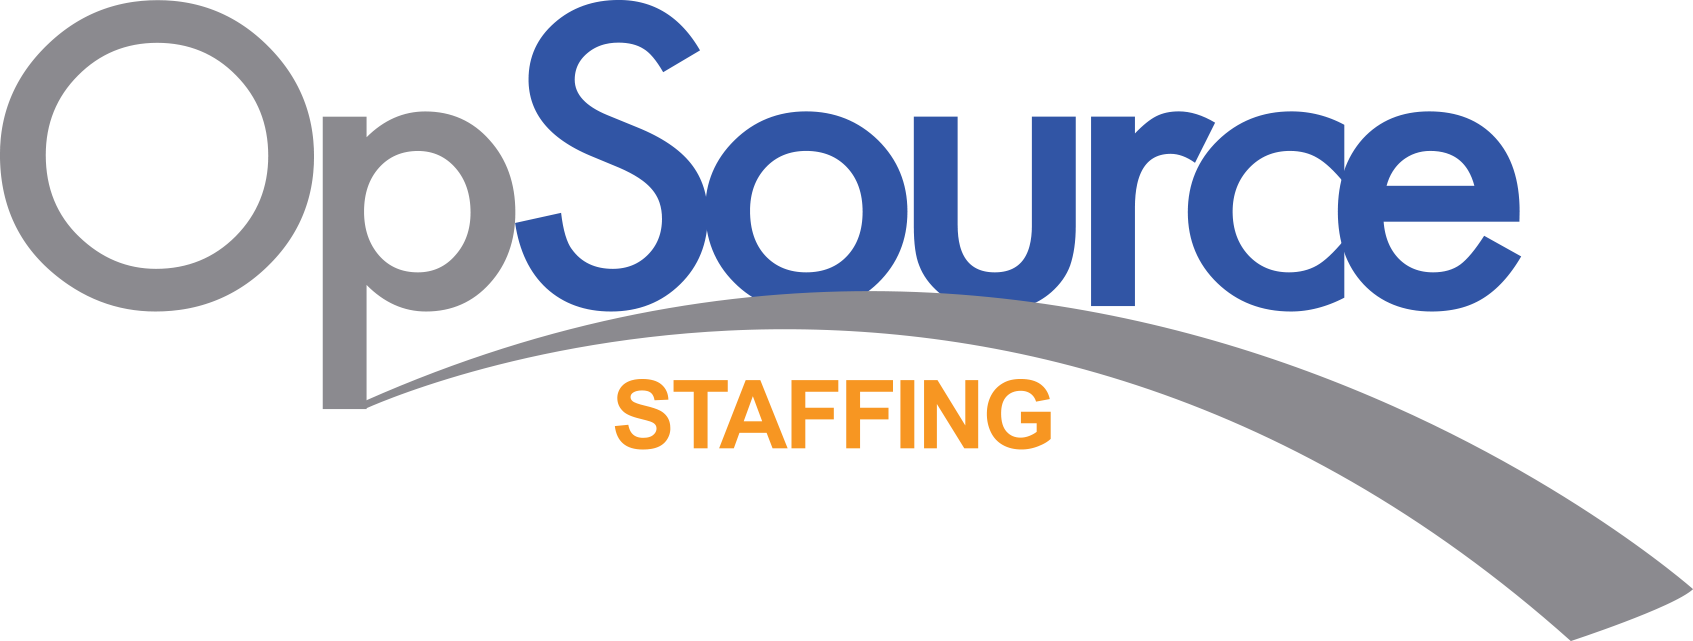 Opsource staffing logo caps